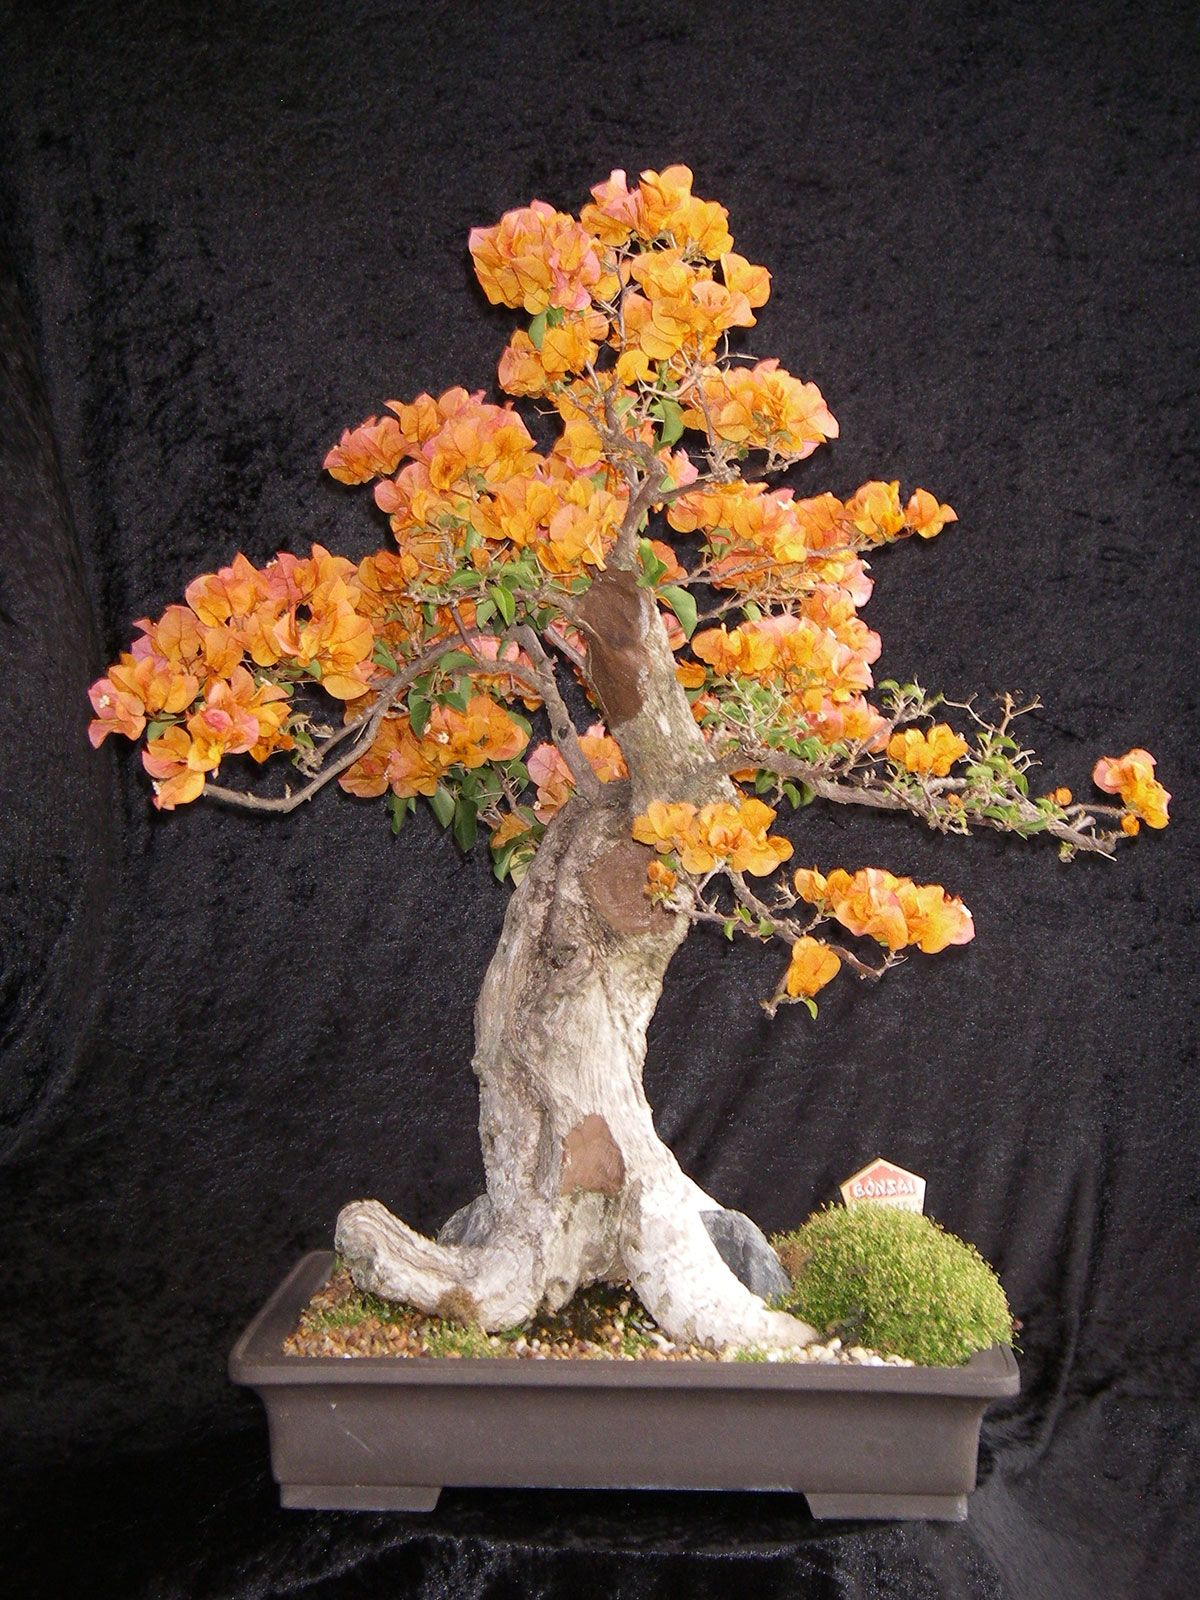 bougainvillea bonsai northside nursery bonsai pinterest bonsai orchidee kaktus s pflanzen. Black Bedroom Furniture Sets. Home Design Ideas